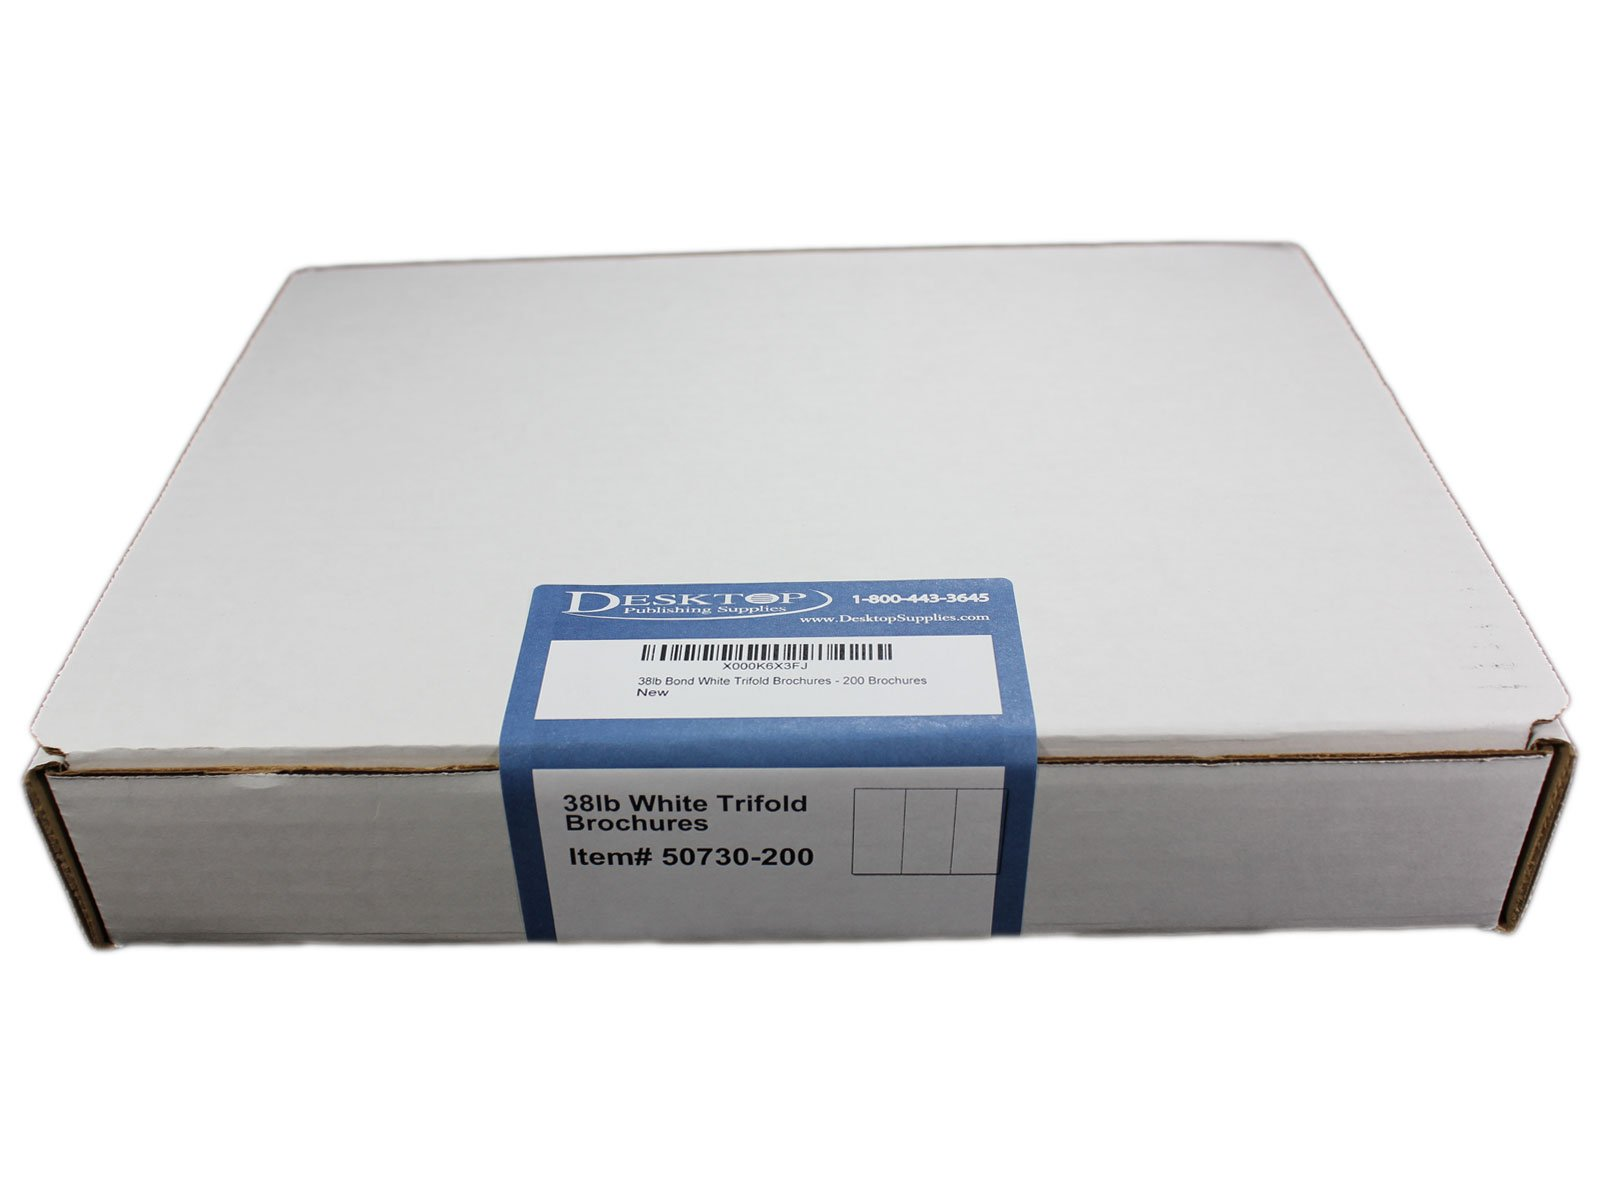 38lb Bond White Trifold Brochures - 200 Brochures - Desktop Publishing Supplies, Inc.™ Brand